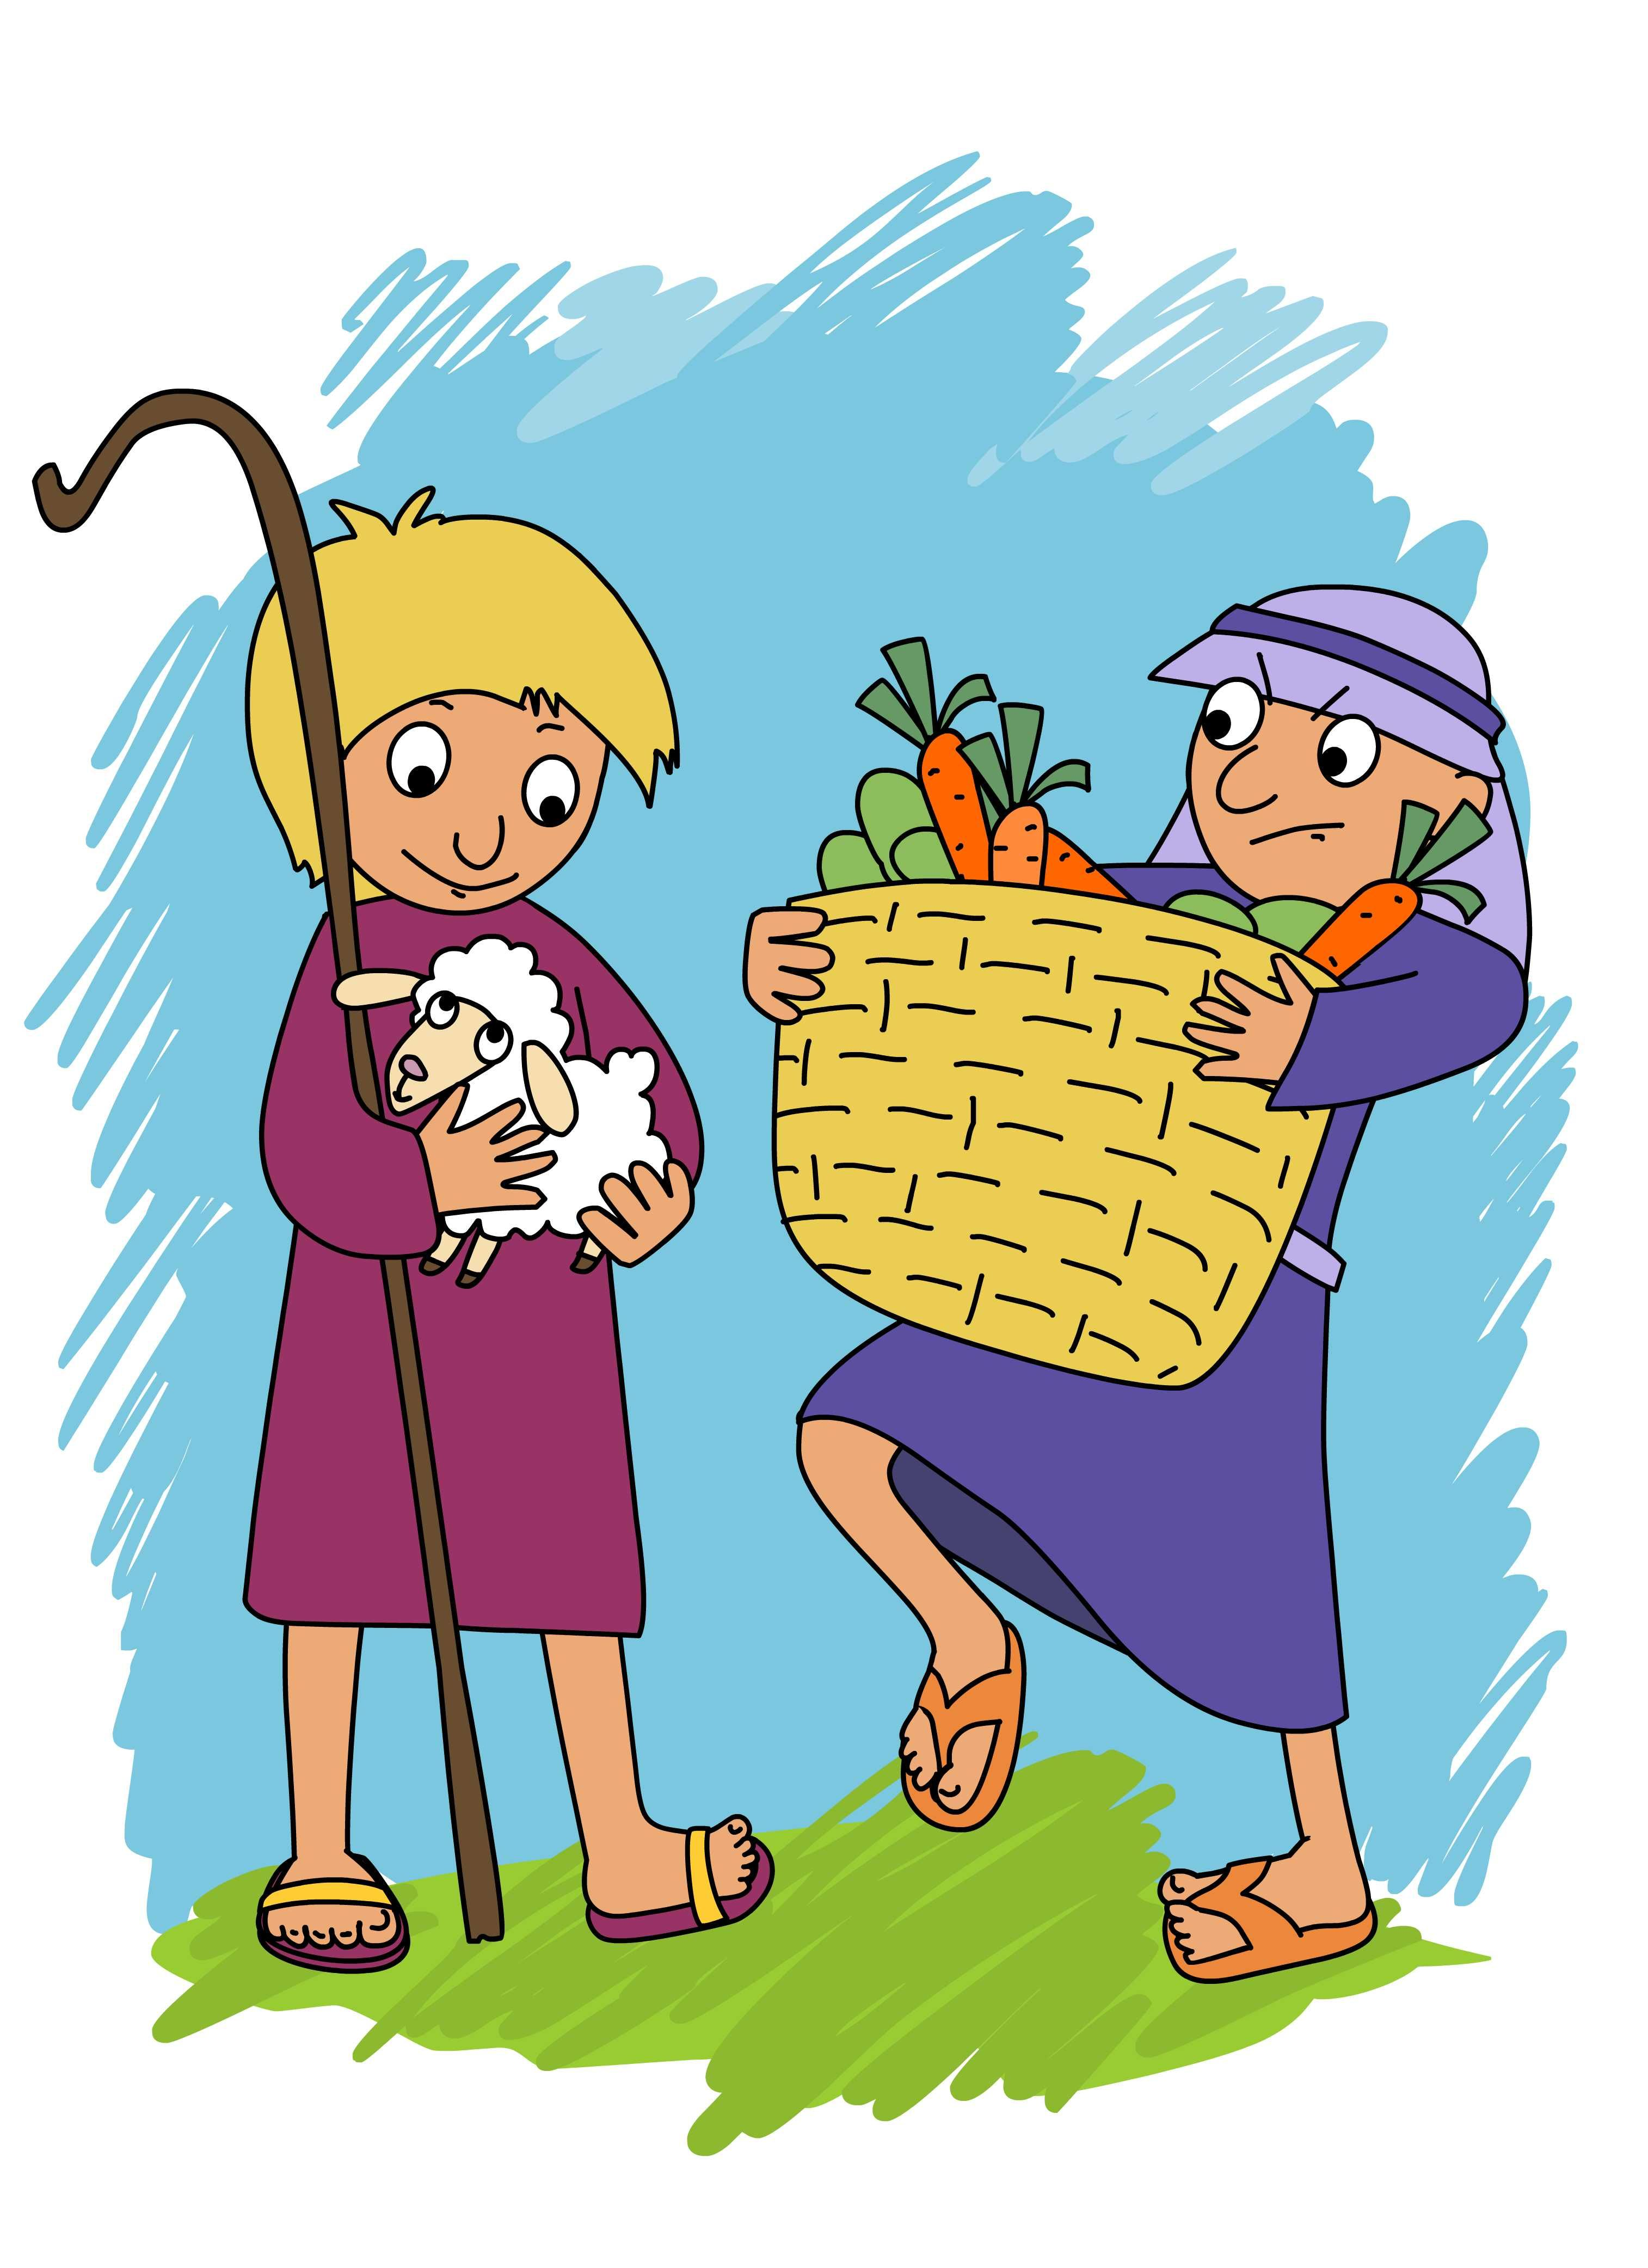 Cain and abel craft ideas - Cain And Abel Will Teach Your Kids About Making Good Choices Do This At Home